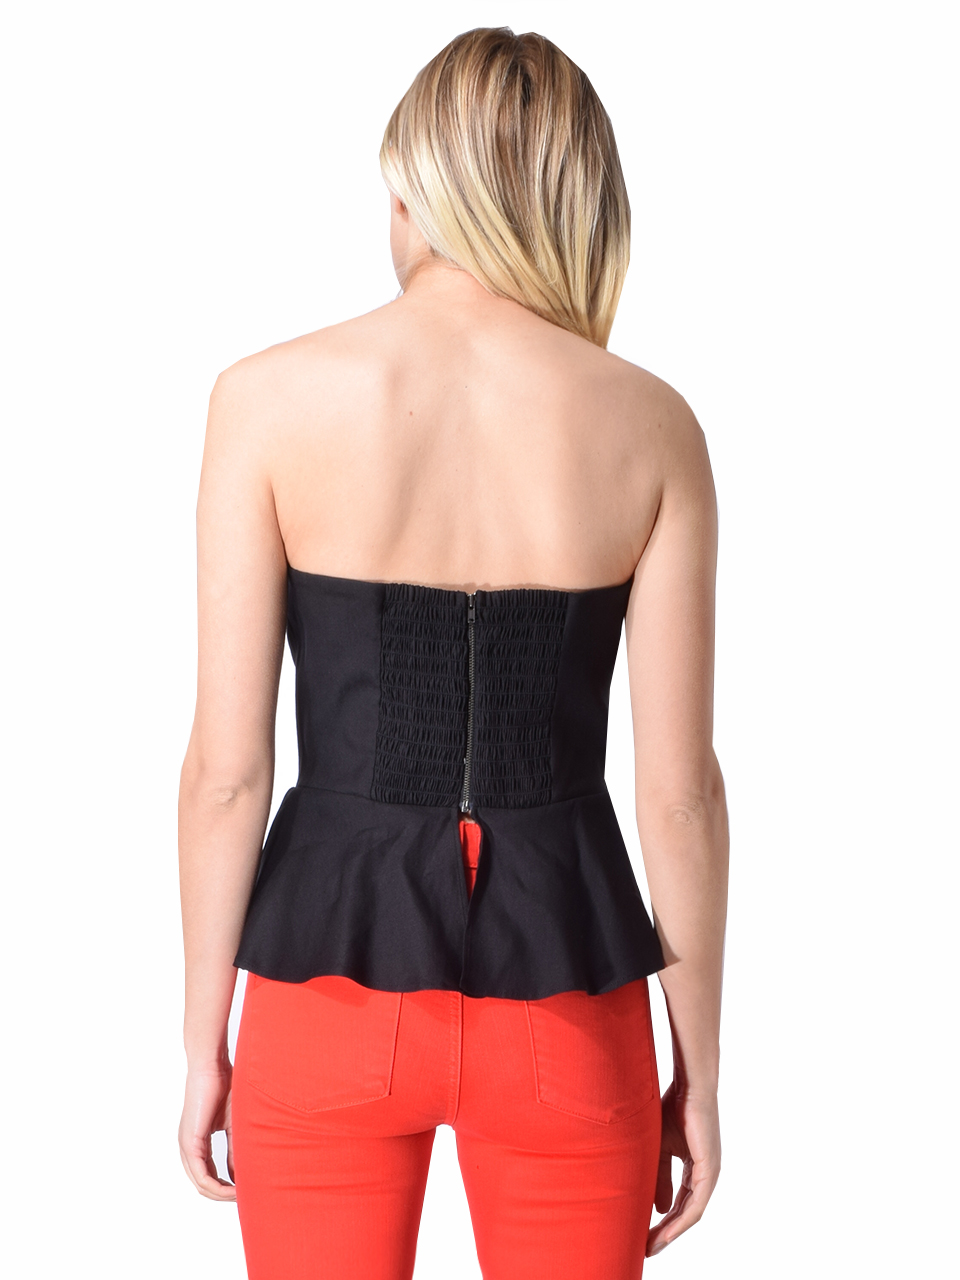 Lavender Brown Bustier /with Peplum In BLACK